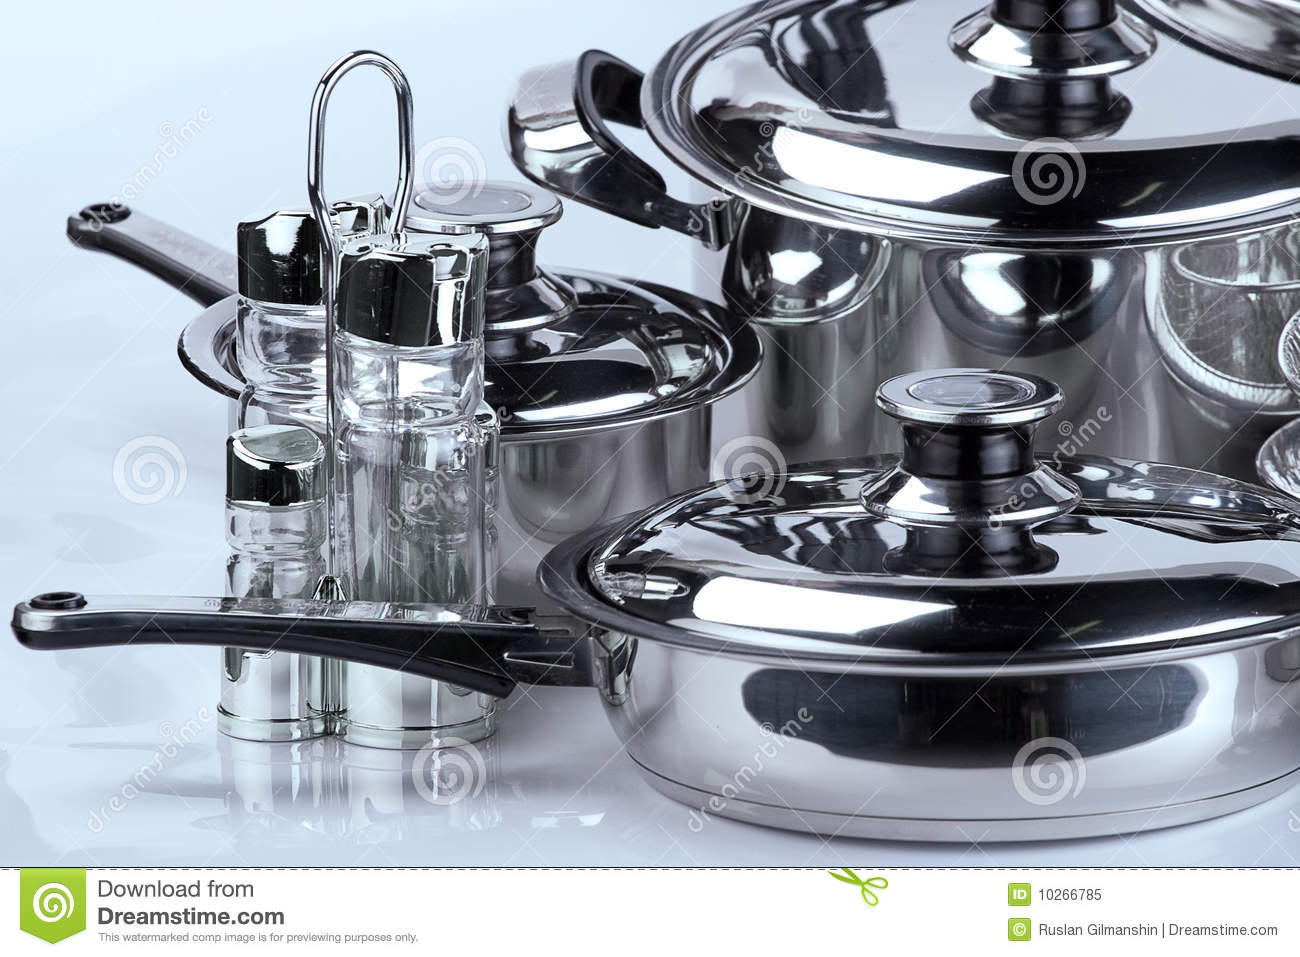 stainless steel cooking pots royalty free stock photo image 10266785. Black Bedroom Furniture Sets. Home Design Ideas